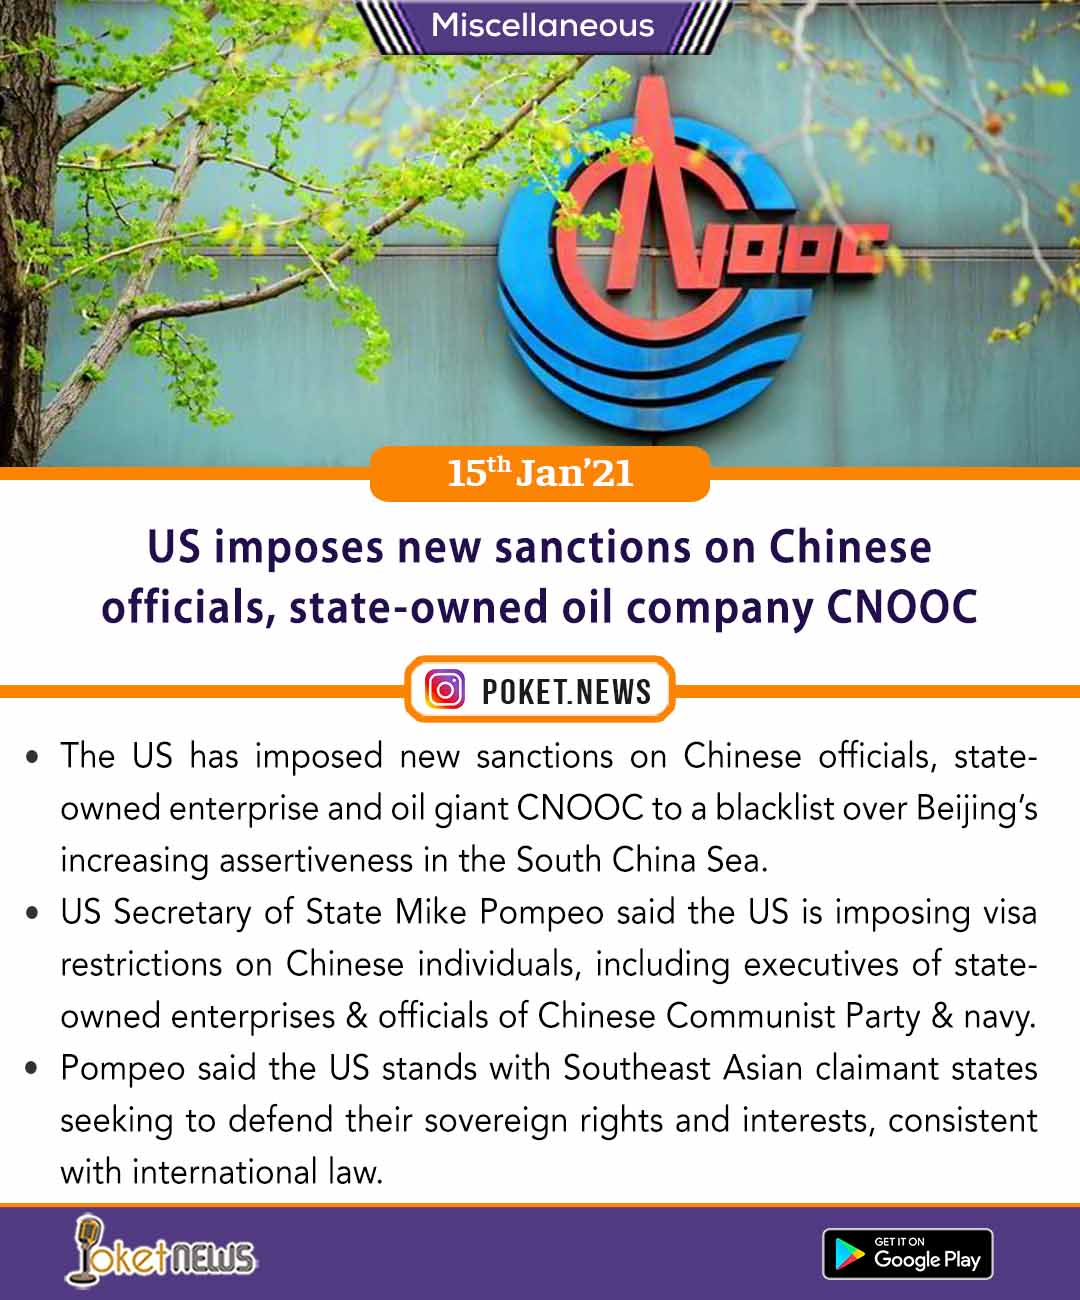 US imposes new sanctions on Chinese officials, state-owned oil company CNOOC